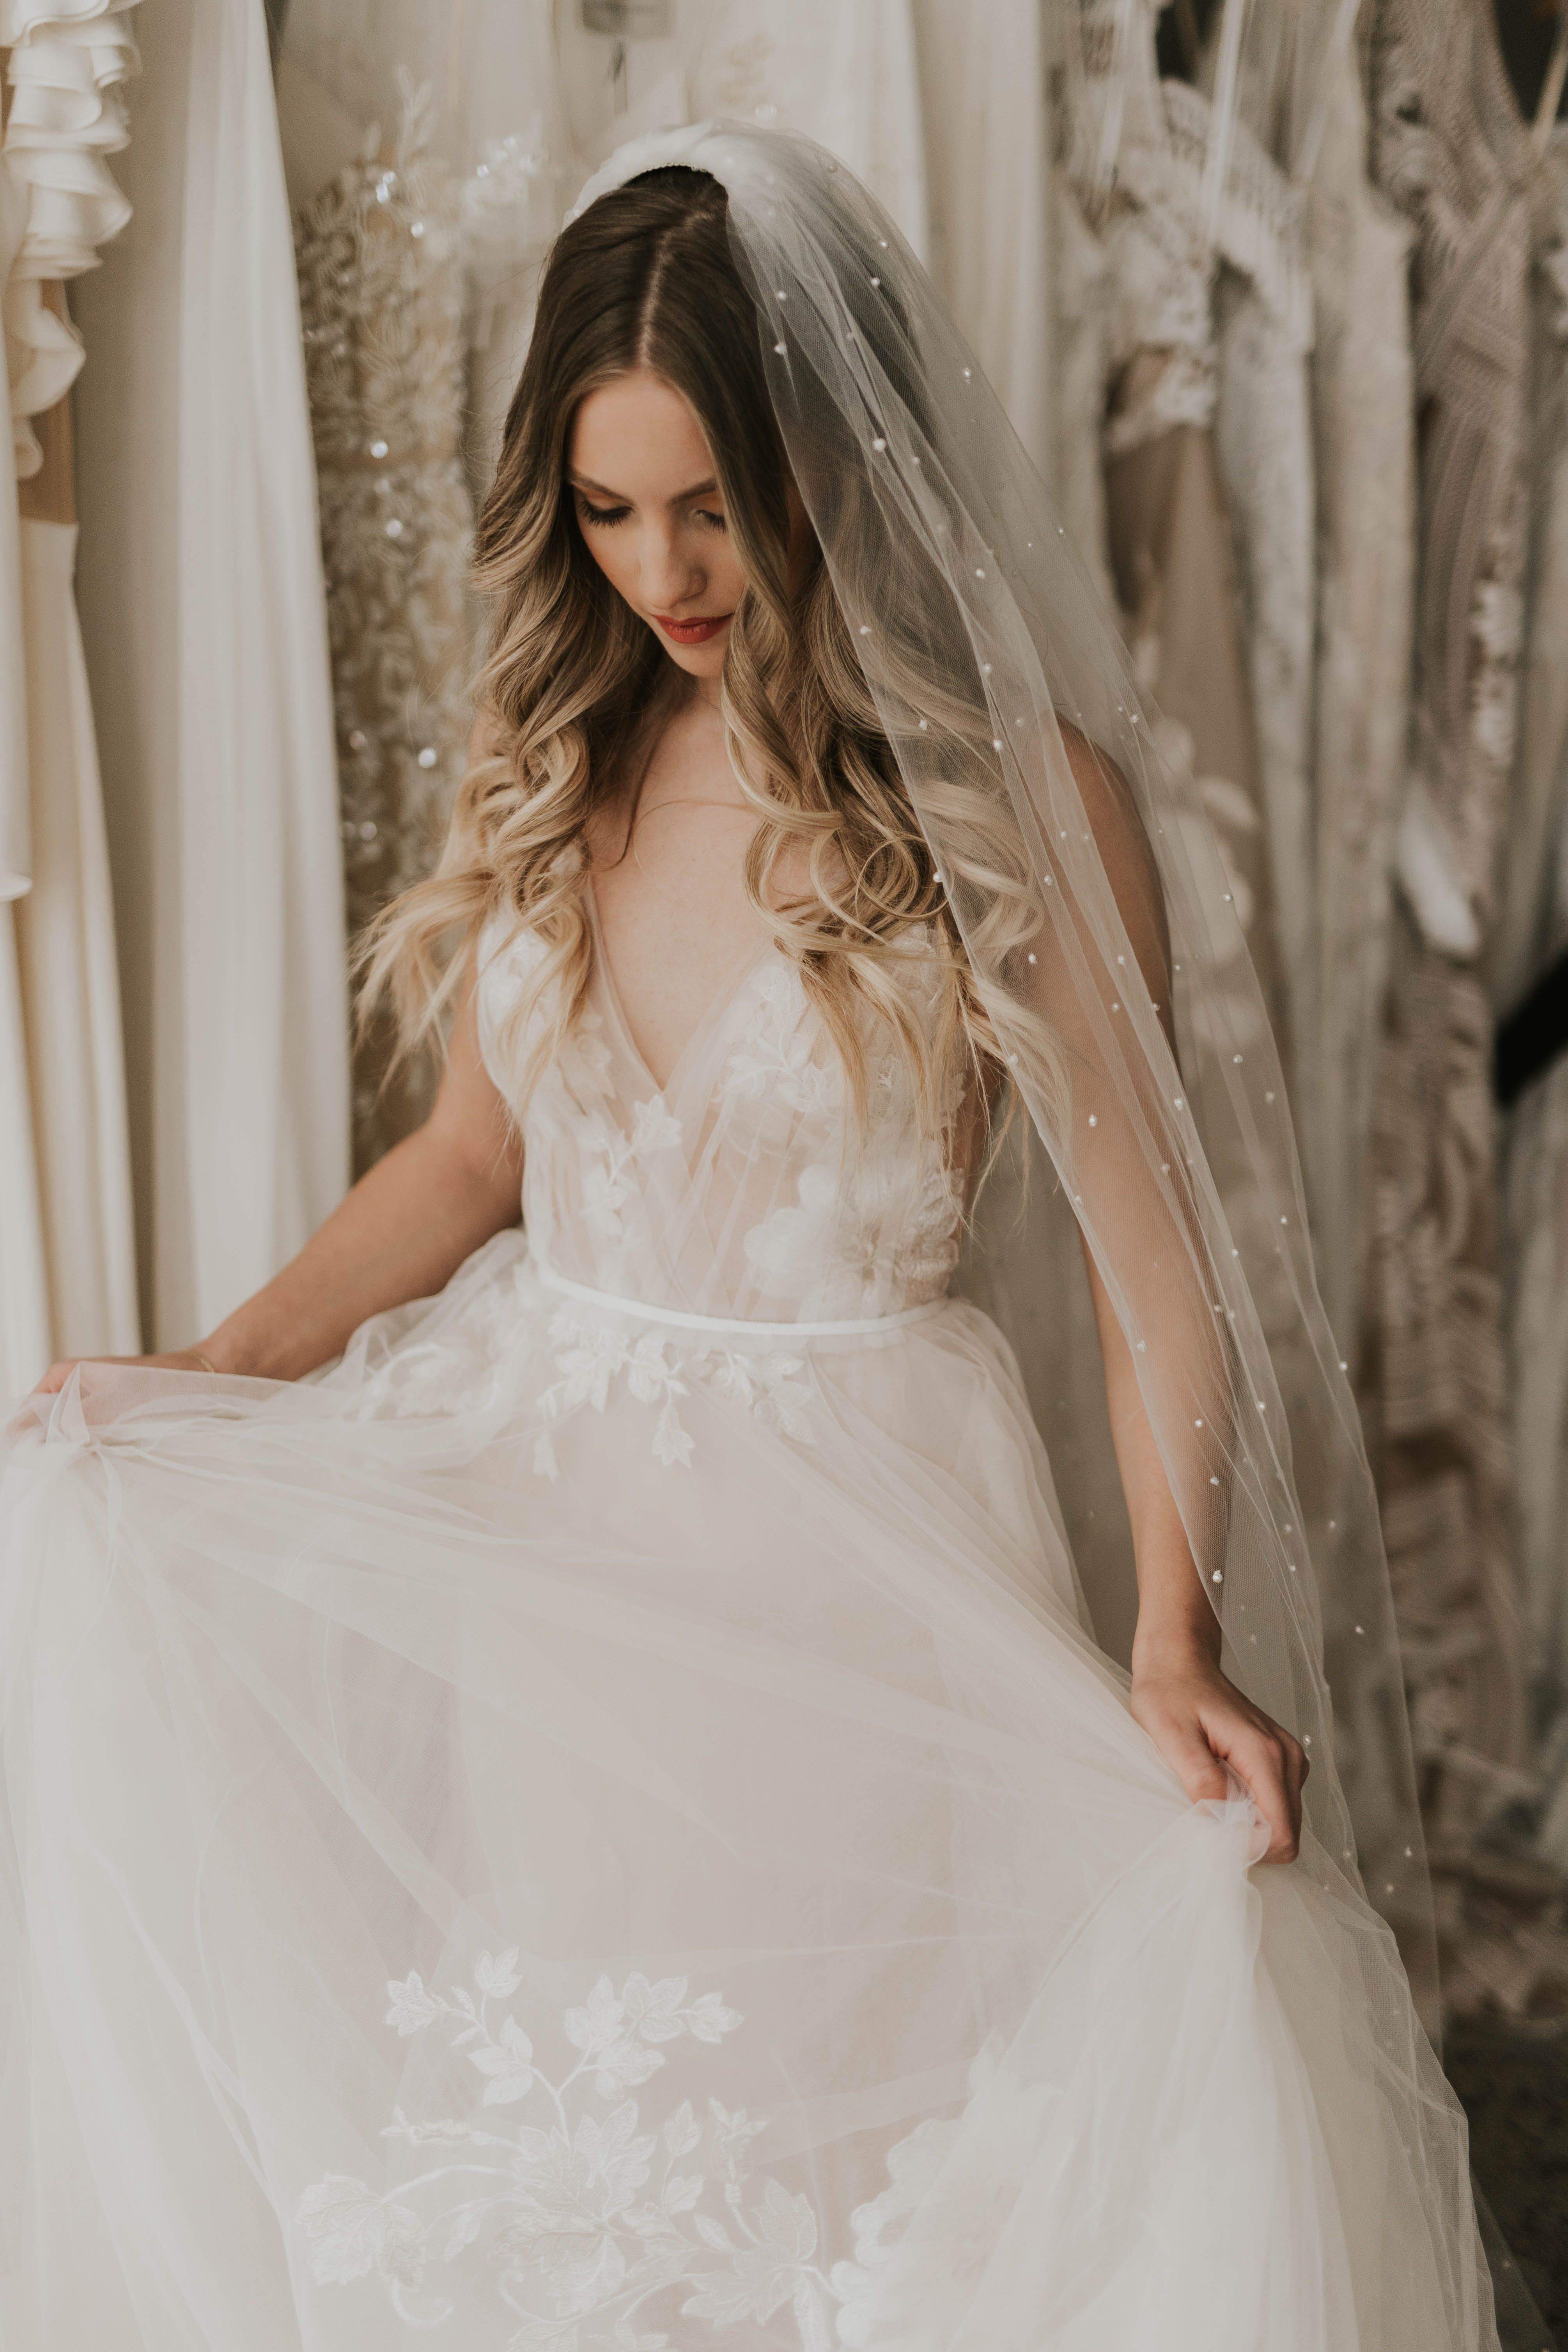 Lainie by Willowby | Available at Minneapolis, Dallas, Denver, Miami, Seattle + Portland a&bé bridal shops | Tulle aline wedding dress with large floral lace dispersed throughout dress | Modern Bridal Shop | Modern Bride | Cool Girl Bridal | 2019 Wedding Dresses | Photos by: Nicole Castonguay | #willowby #watters #aandbebridalshop #bridalshops